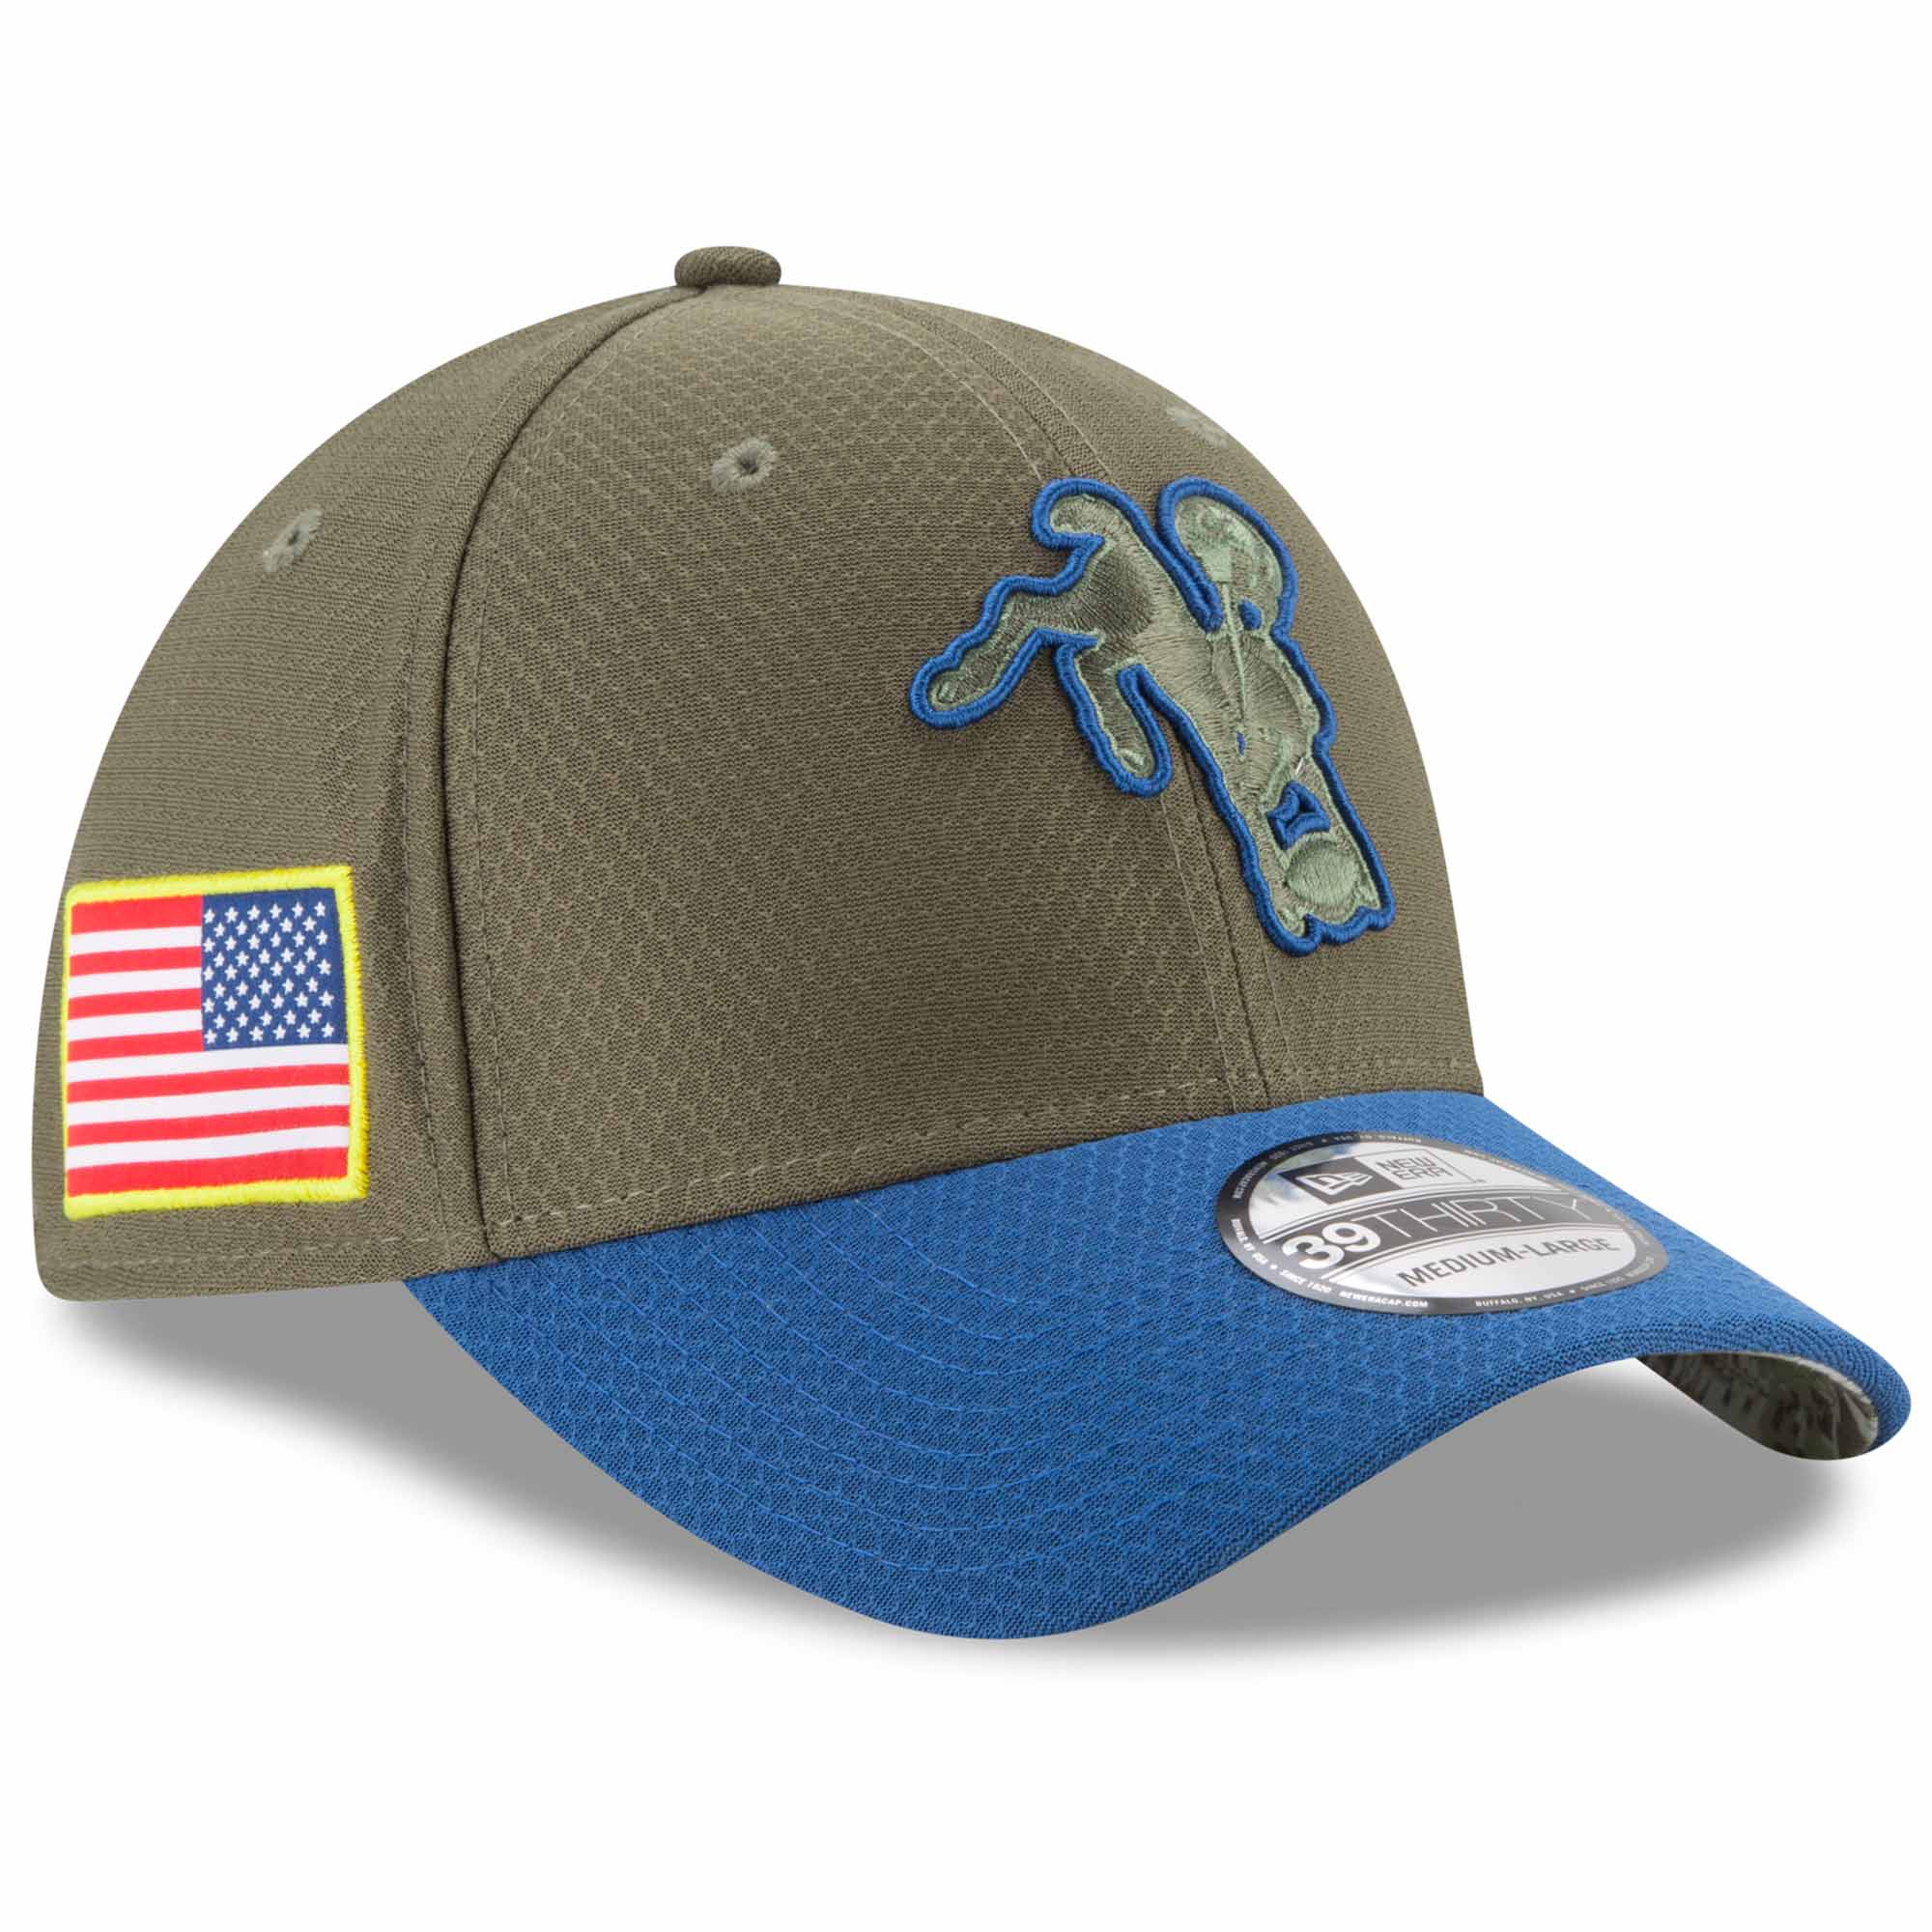 Indianapolis Colts New Era 2017 Salute To Service 39THIRTY Flex Hat - Olive